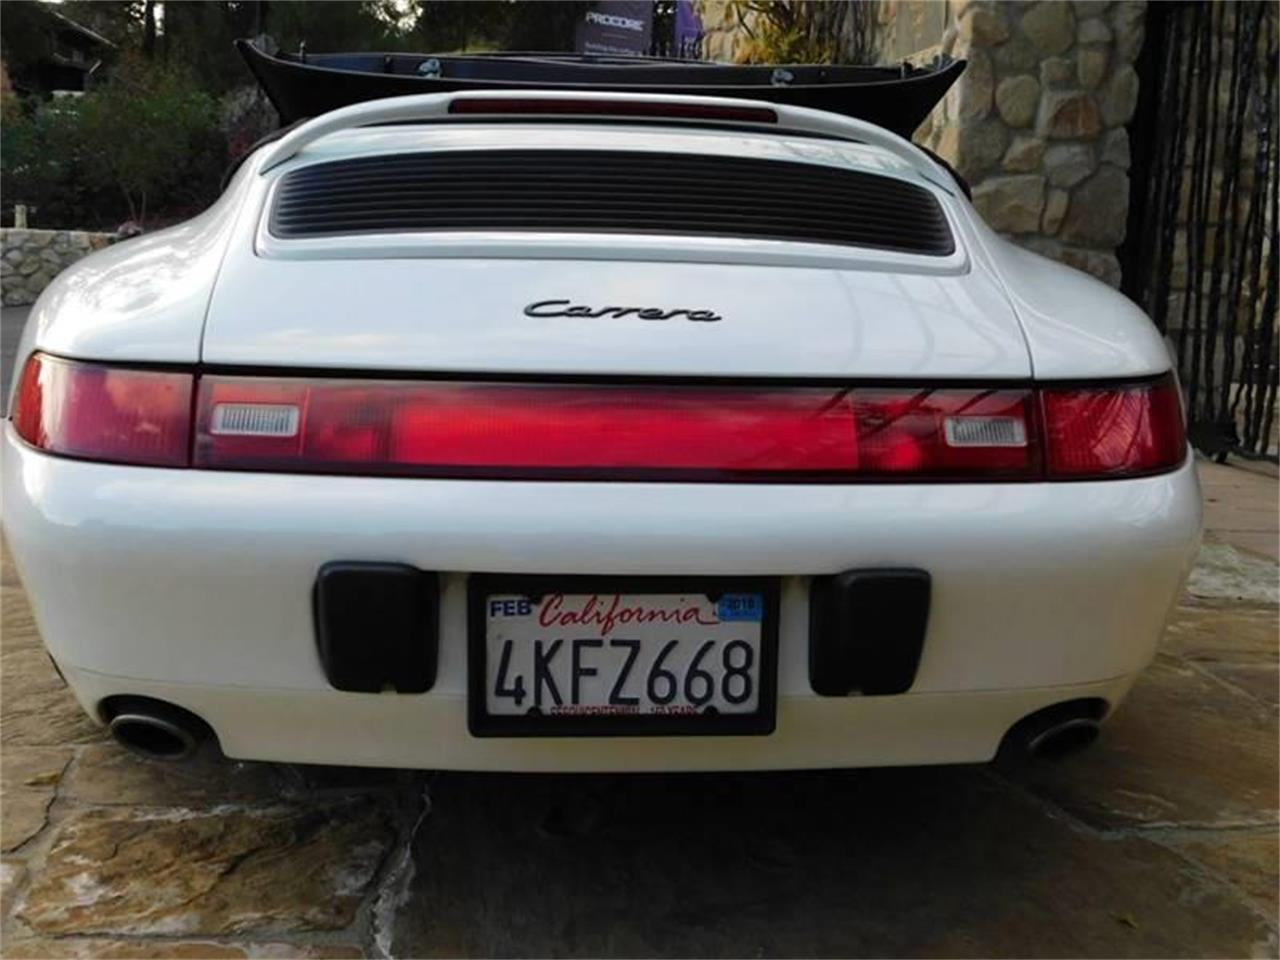 1995 Porsche 911 for sale in Santa Barbara, CA – photo 7